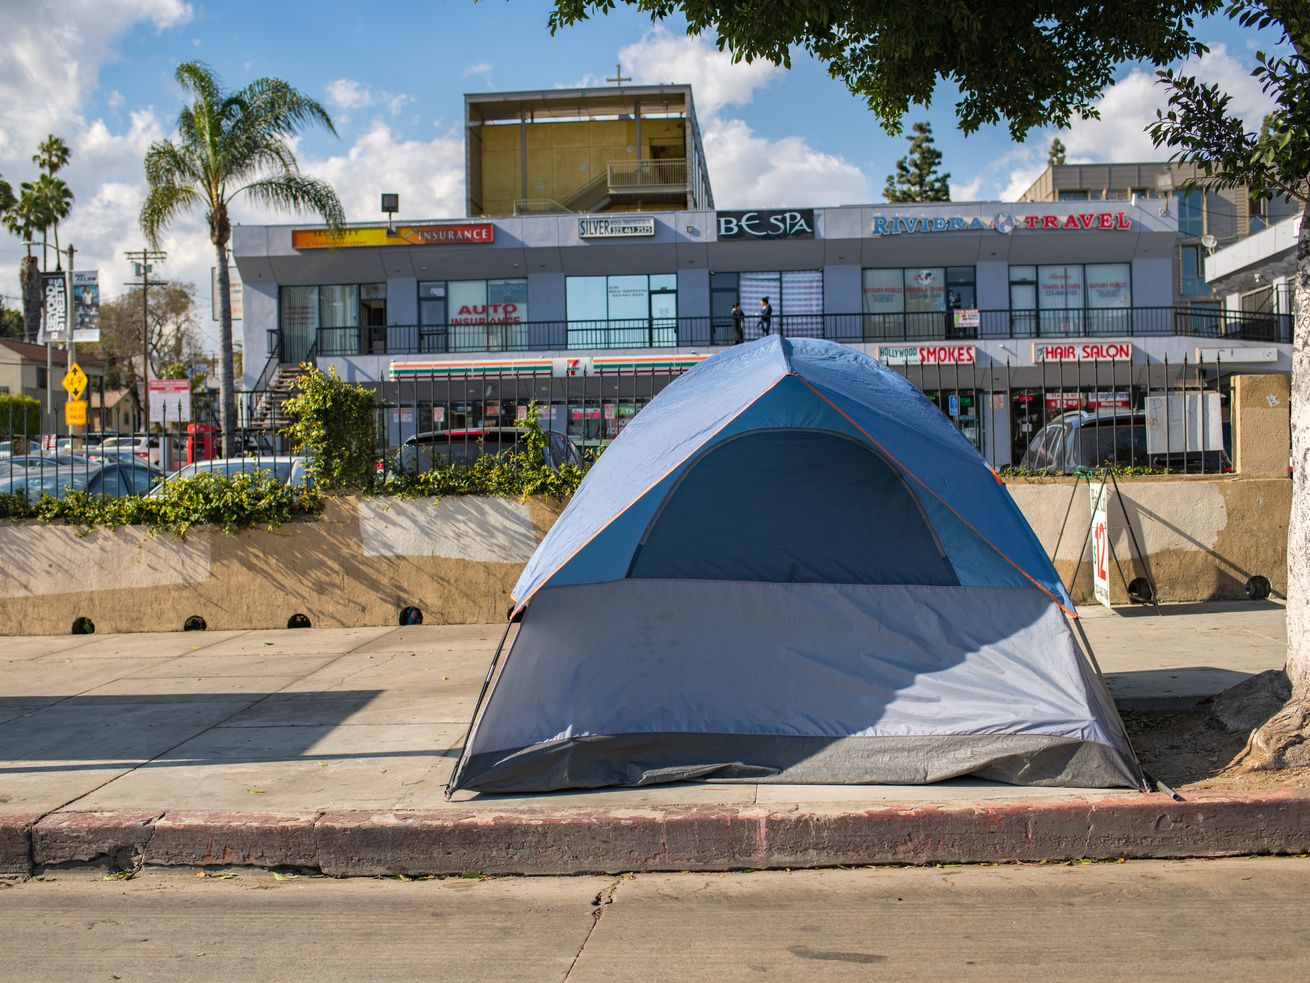 The emergency shelters are meant to homeless provide residents with a place to stay while waiting for permanent housing.